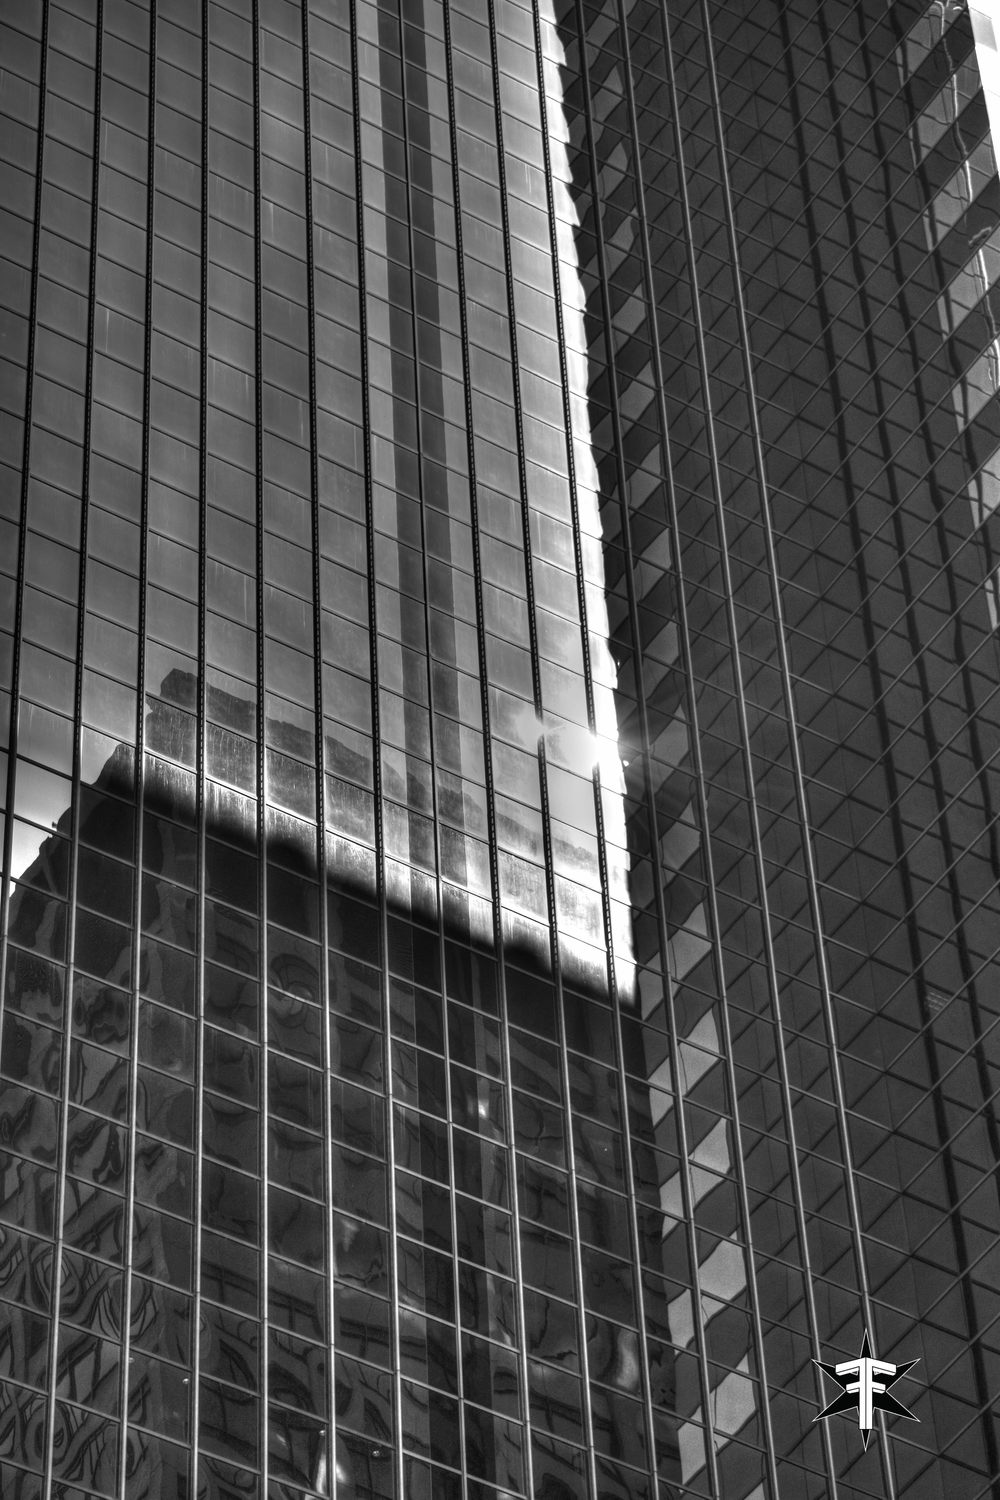 chicago architecture eric formato photography design arquitectura architettura buildings skyscraper skyscrapers-122.jpg